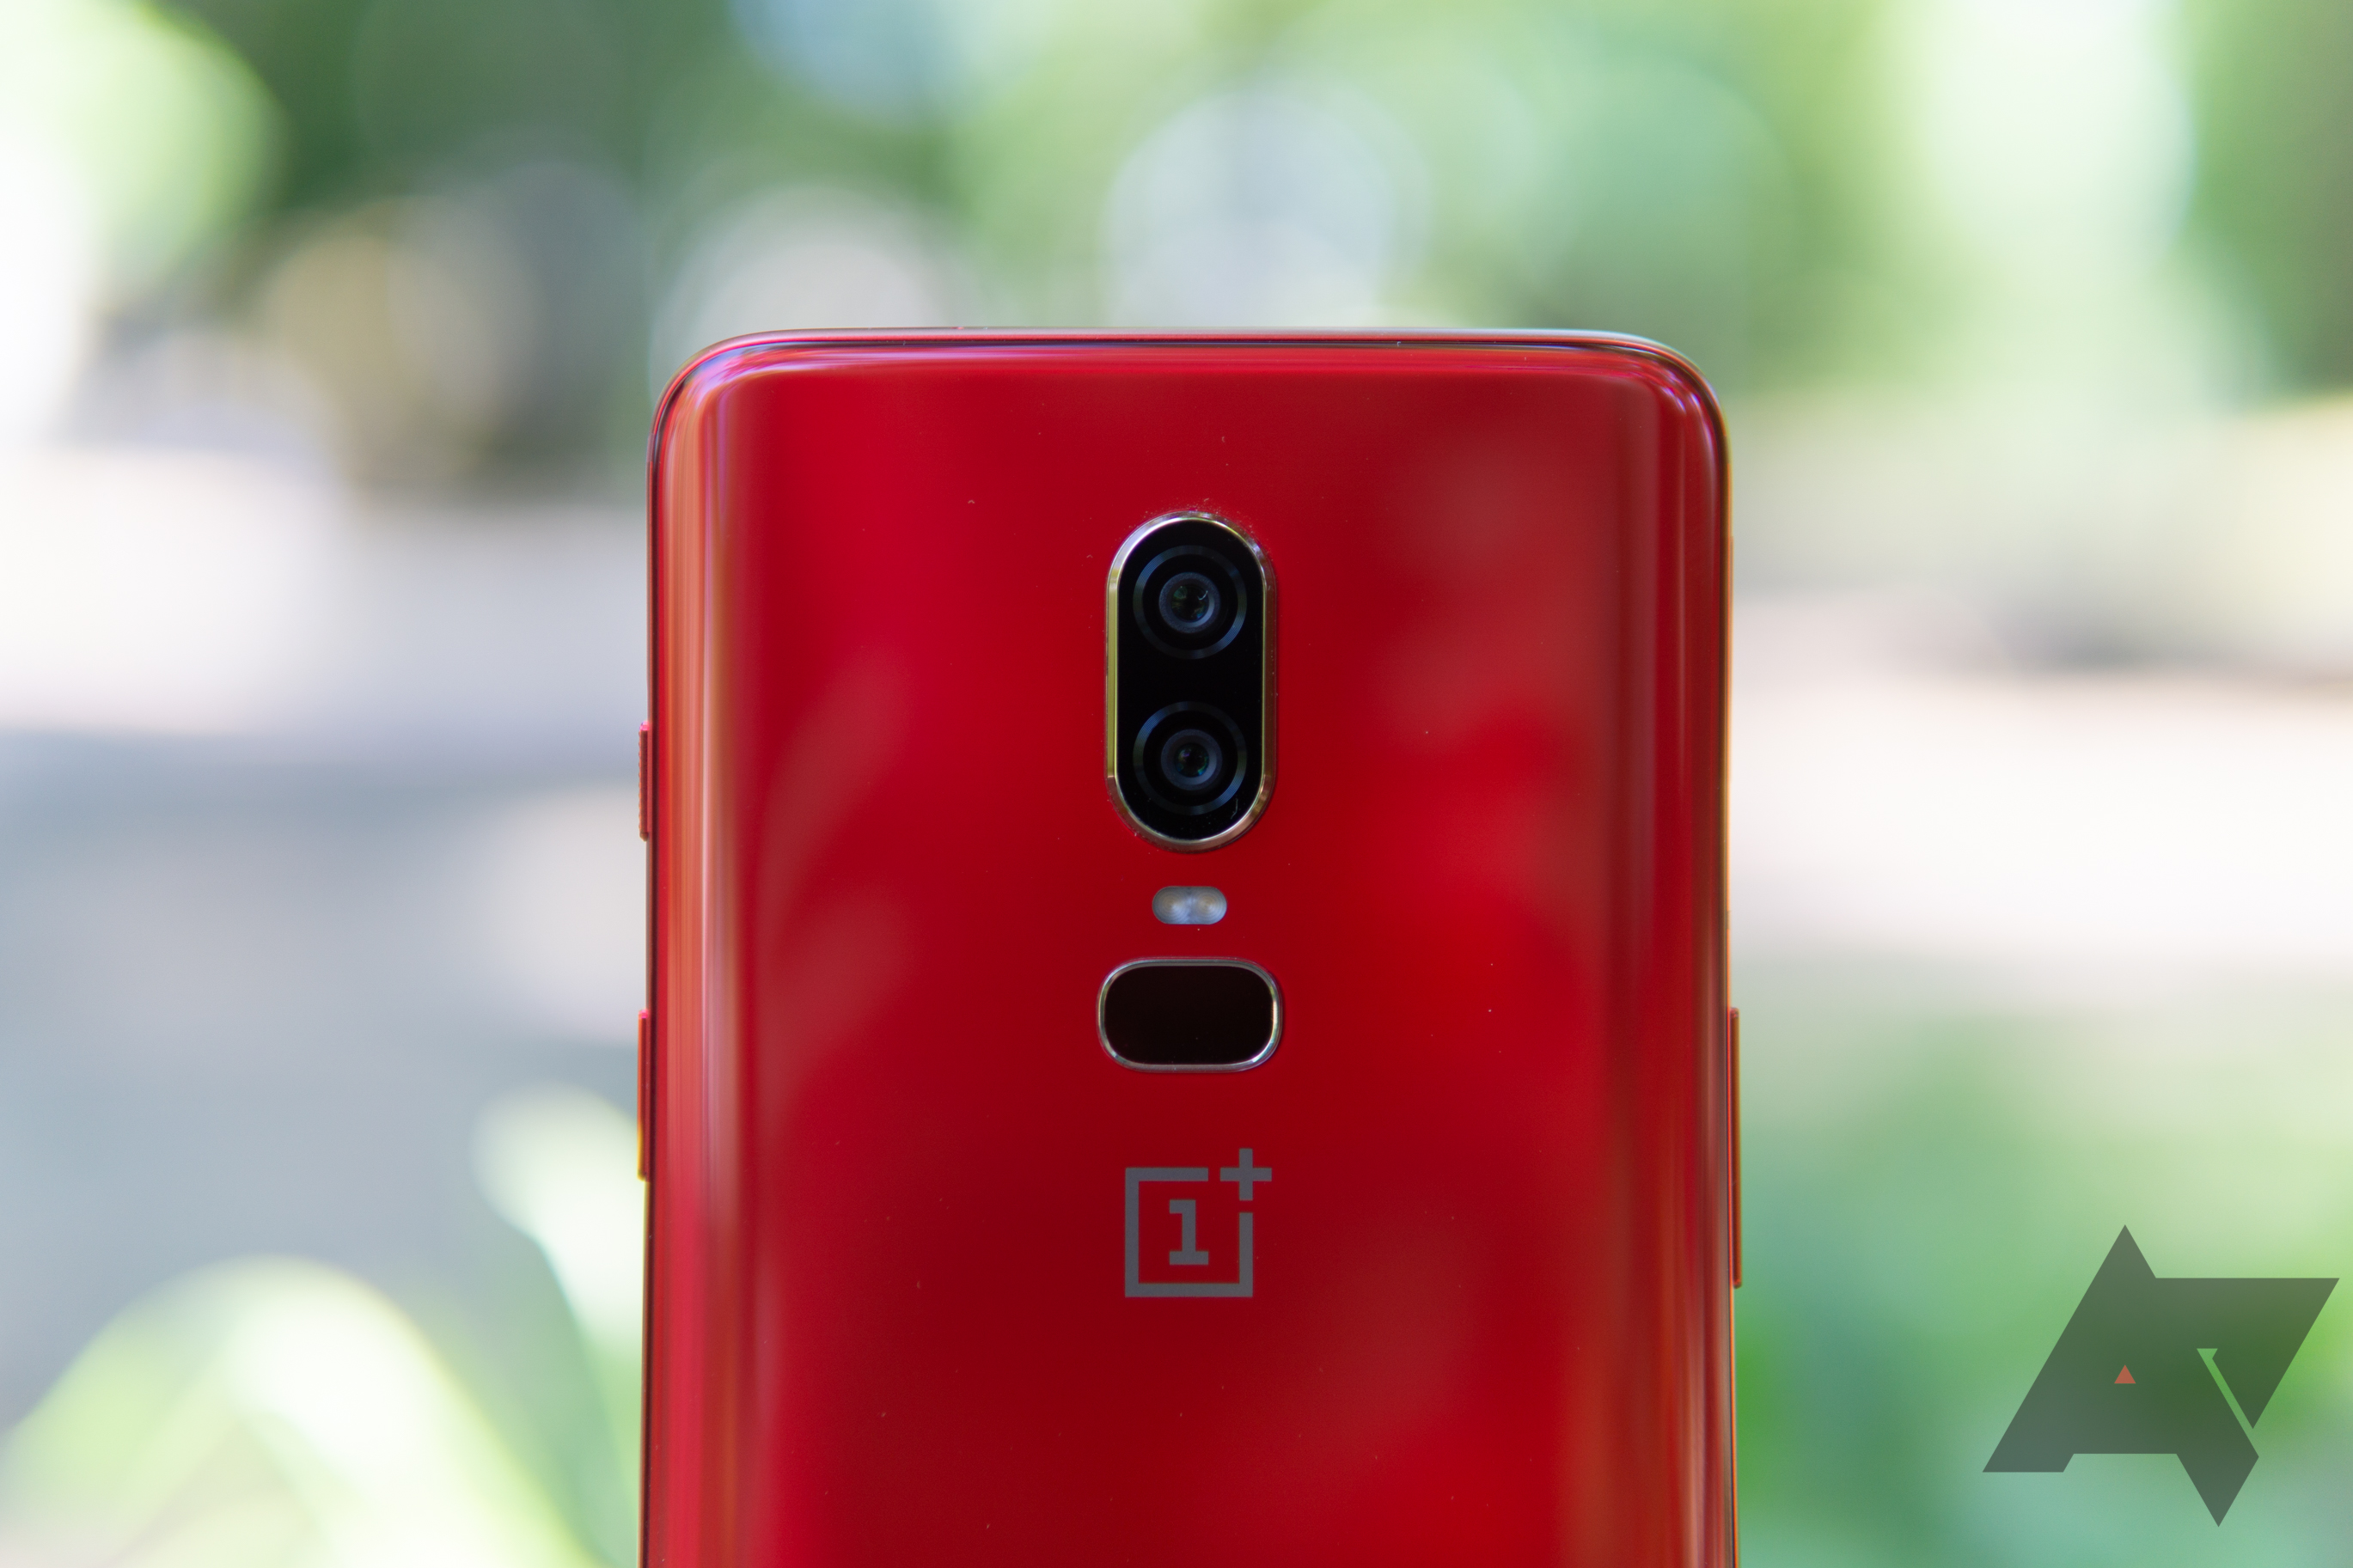 Update: Reportedly certified] The OnePlus 6T might be